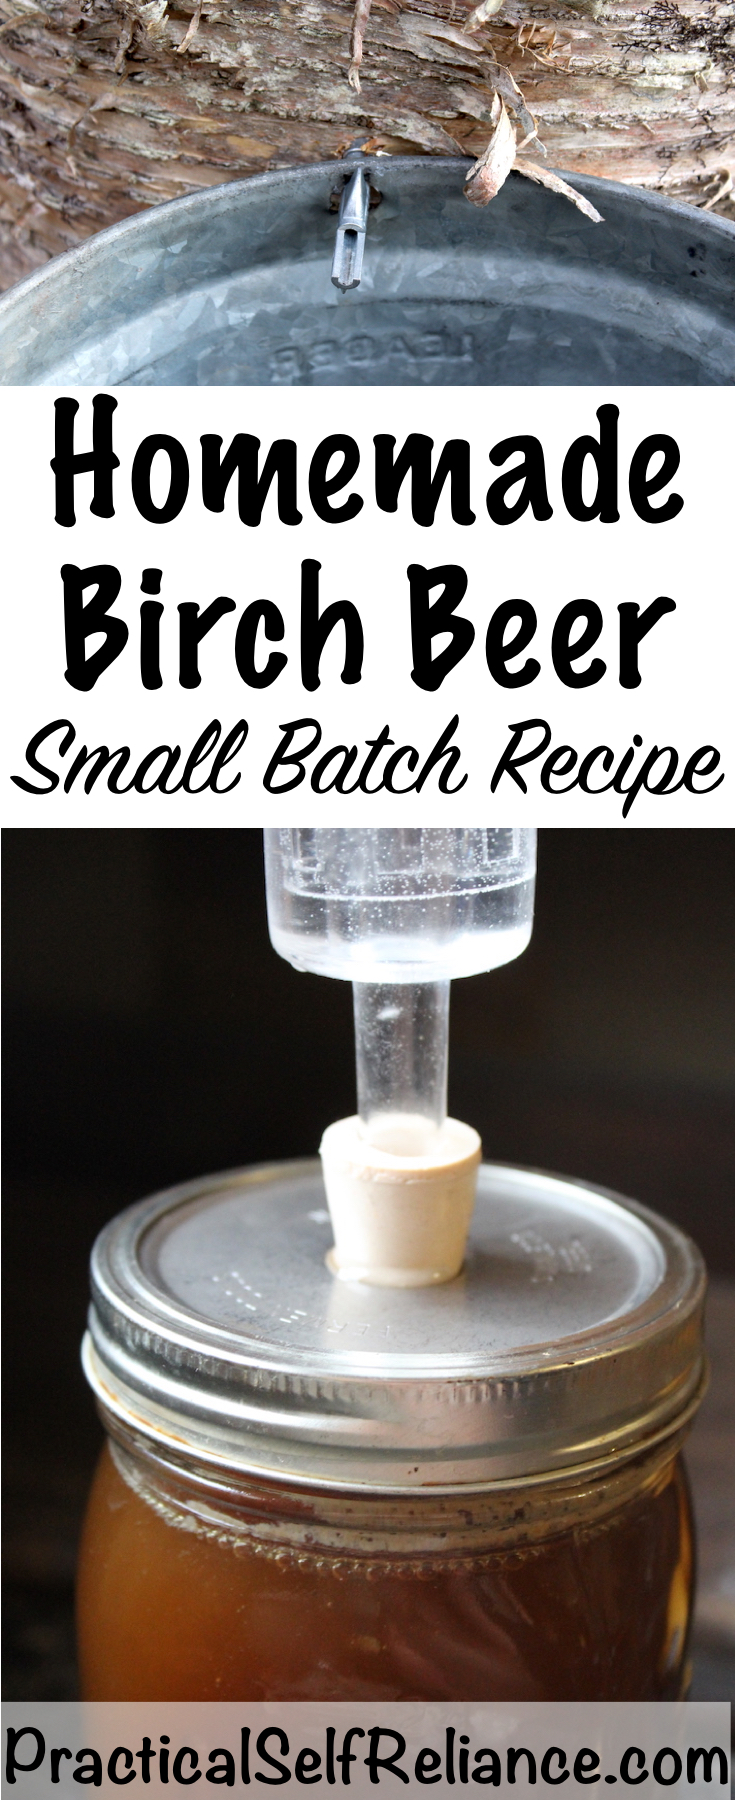 Homemade Birch Beer Recipe